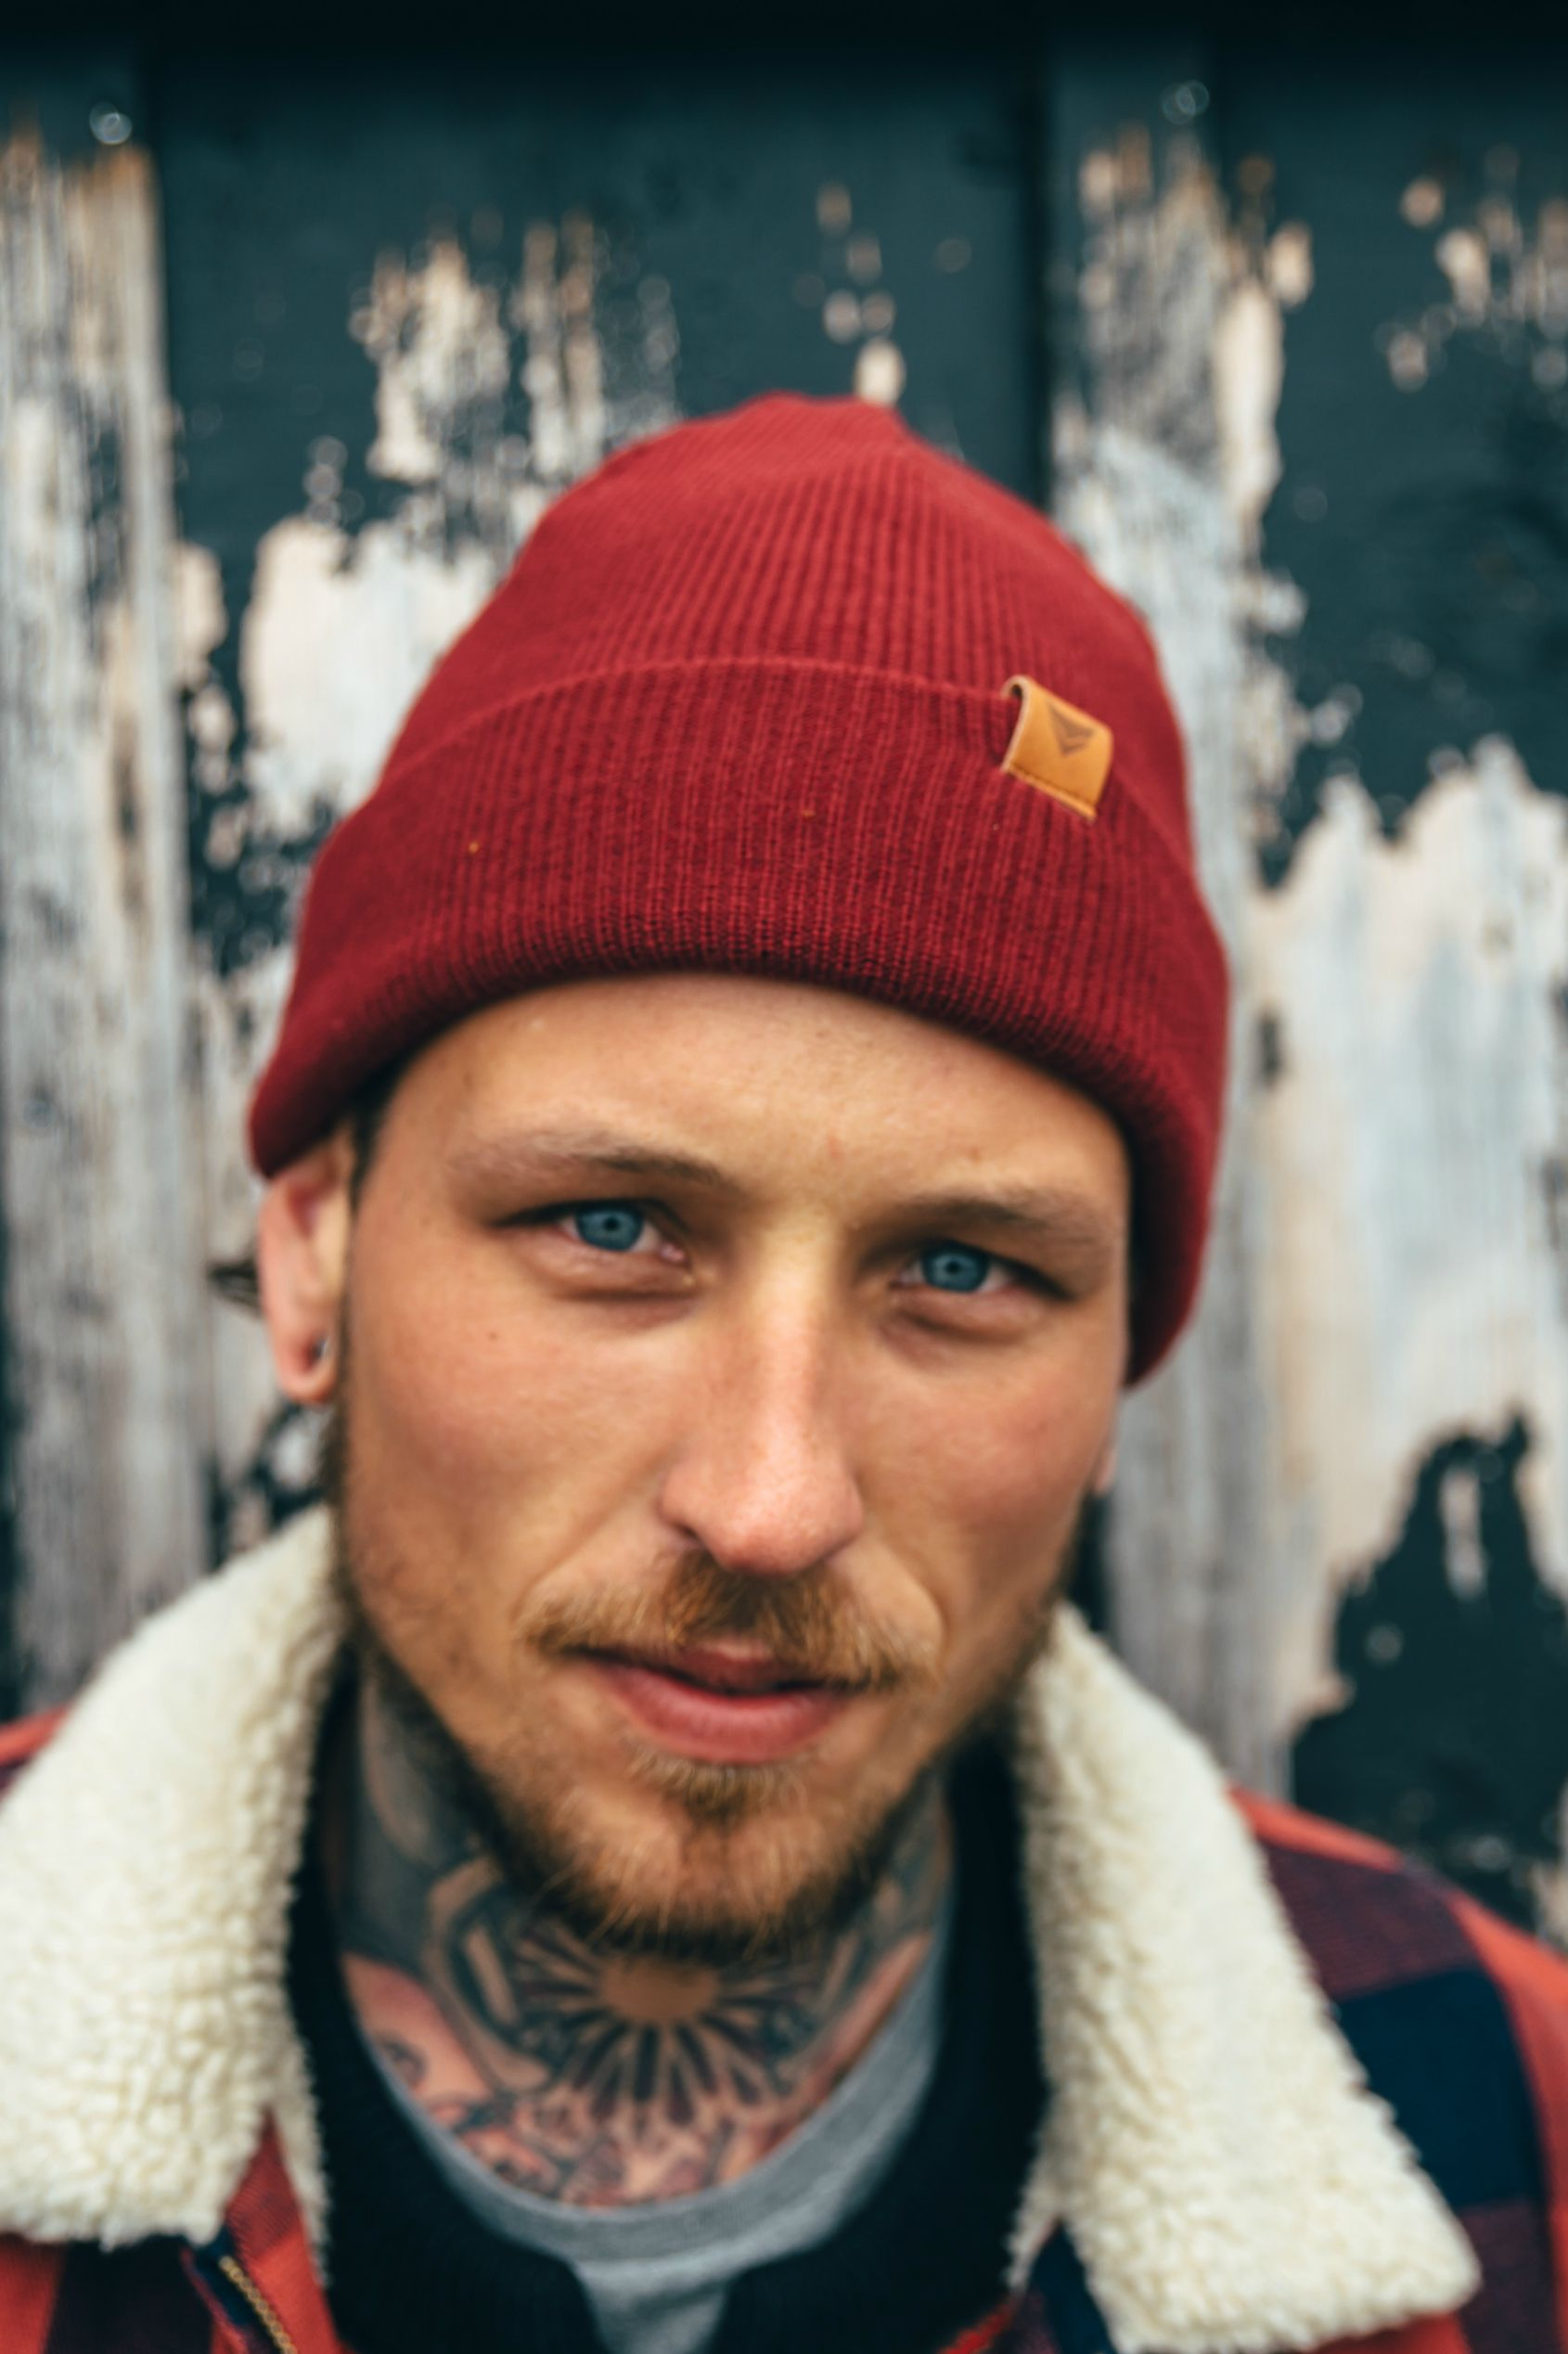 Wool Beanies for Men. Casual and Cool Burgundy Outdoor look for men. Urban Fisherman  beanie by VAI-KØ. Shop now! 744d4e85801